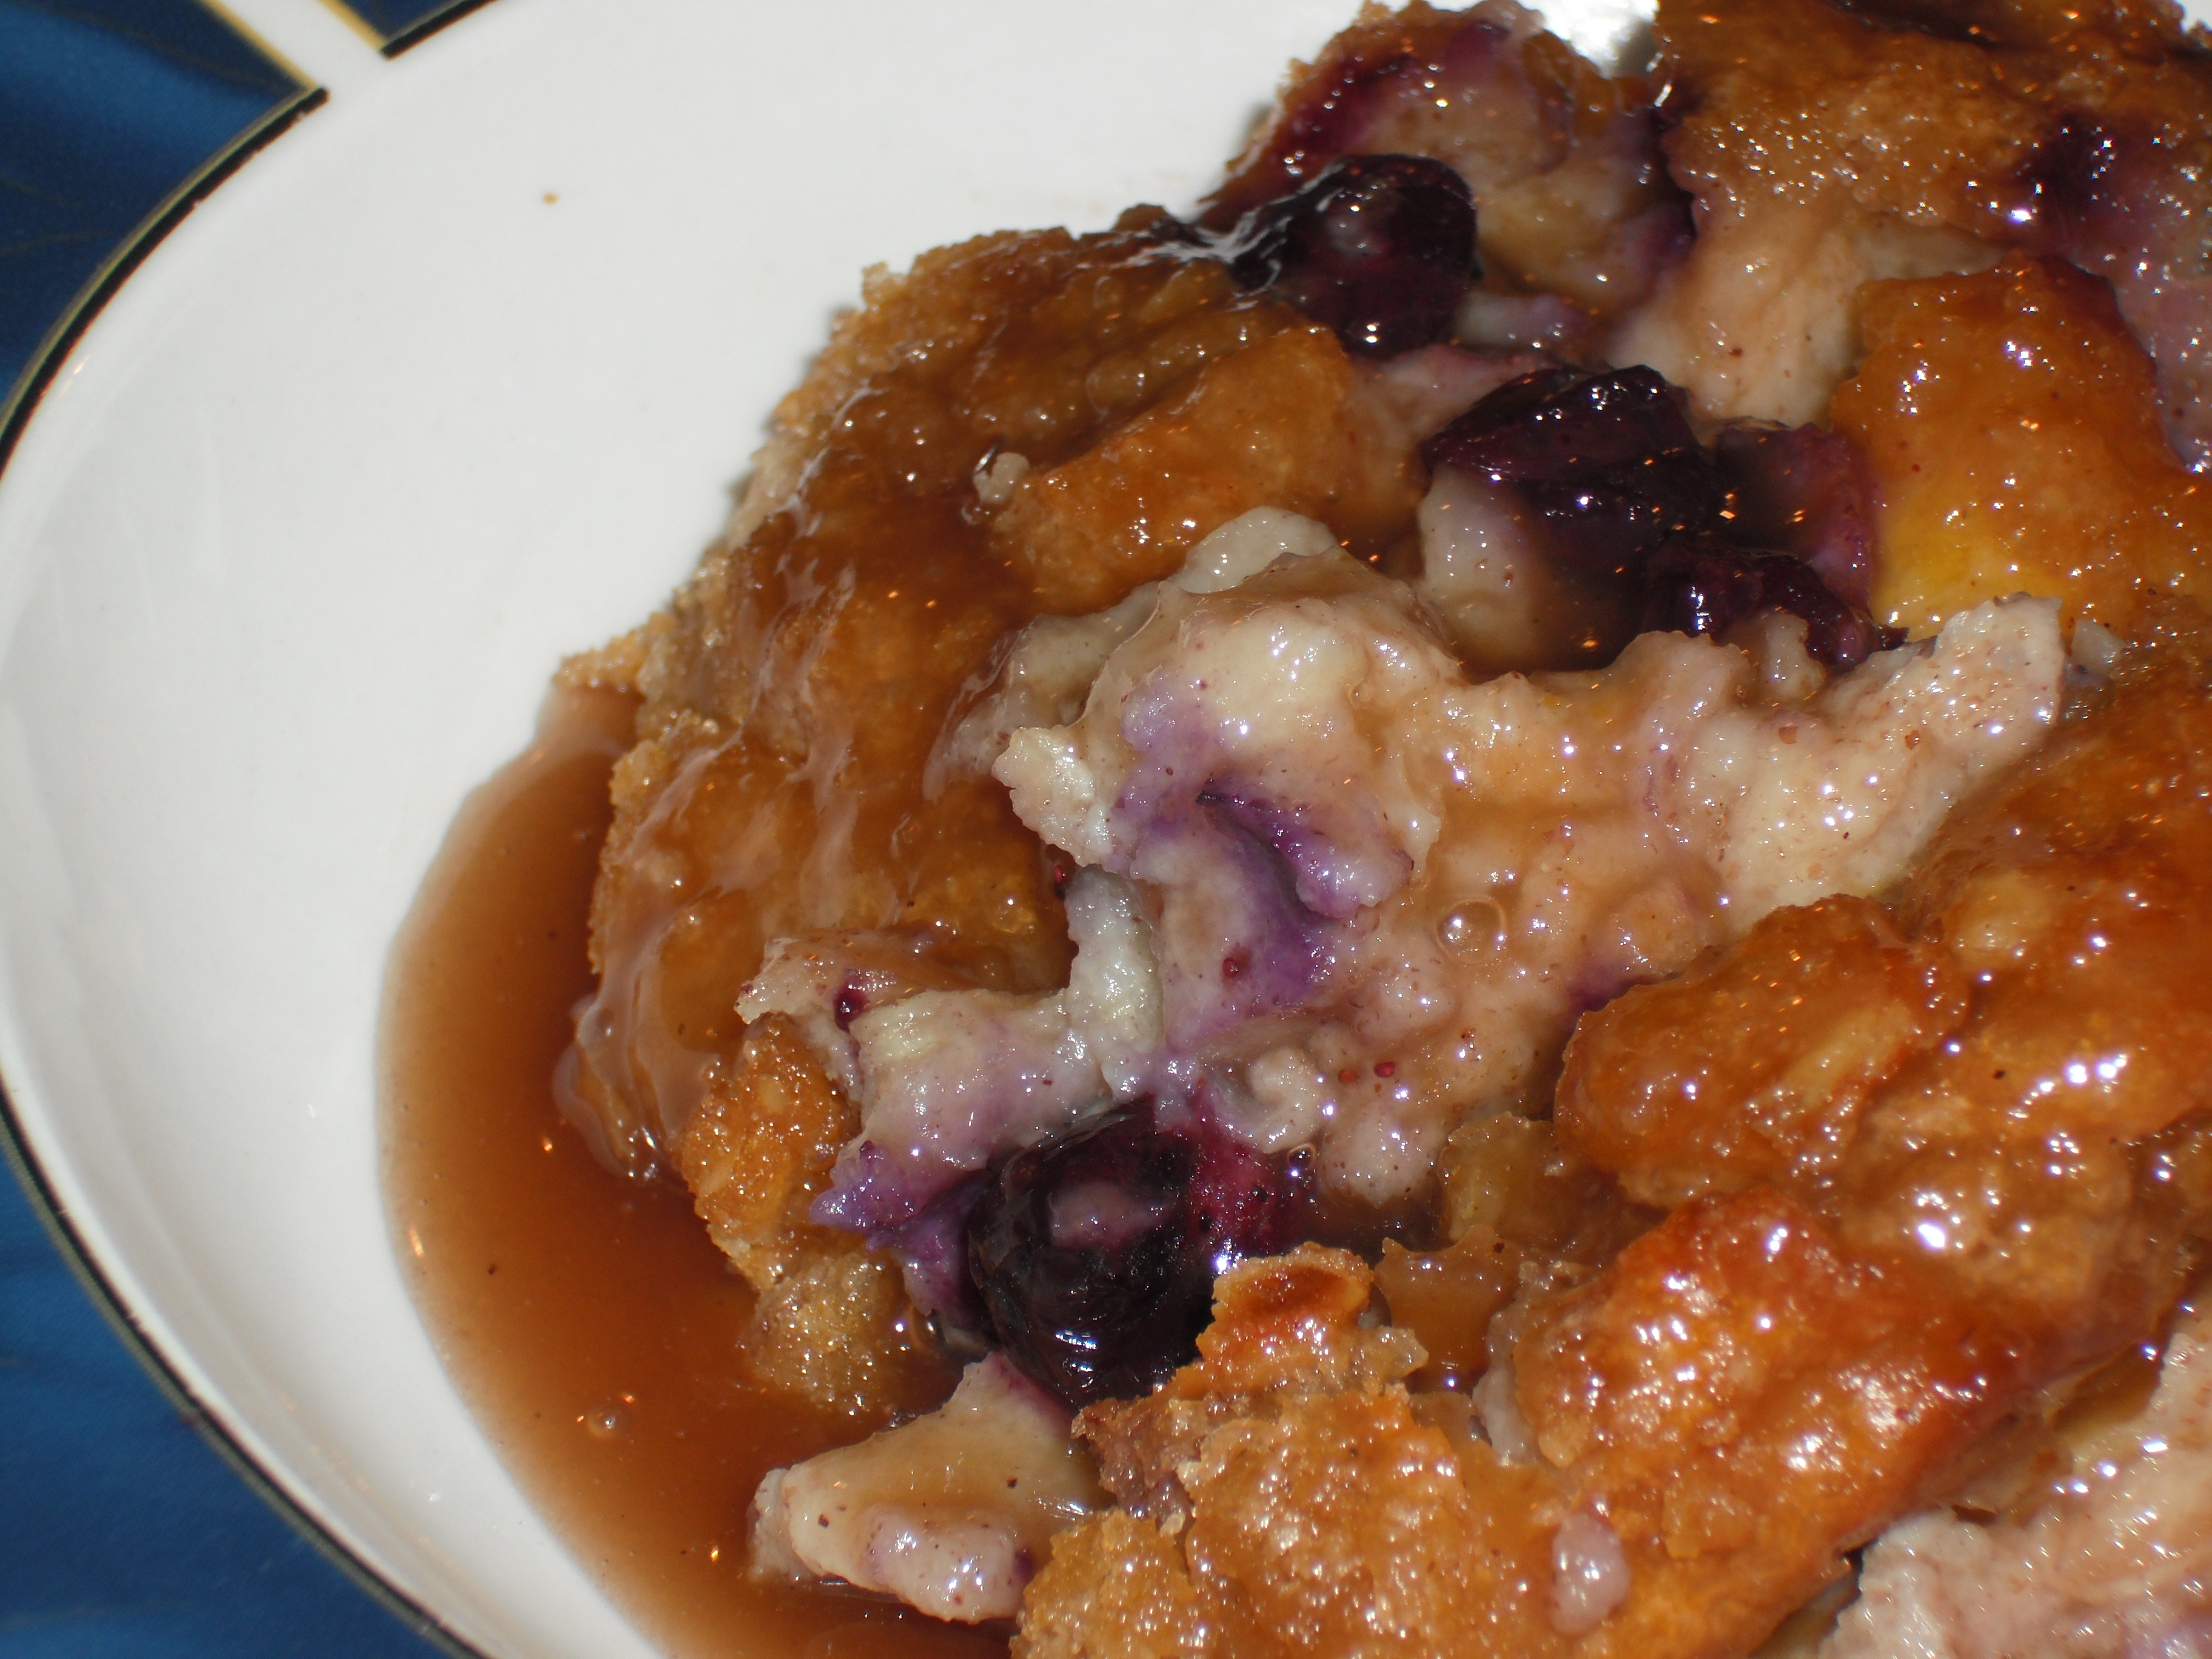 Blueberry & White Chocolate Bread Pudding with Blueberry Caramel Sauce ...